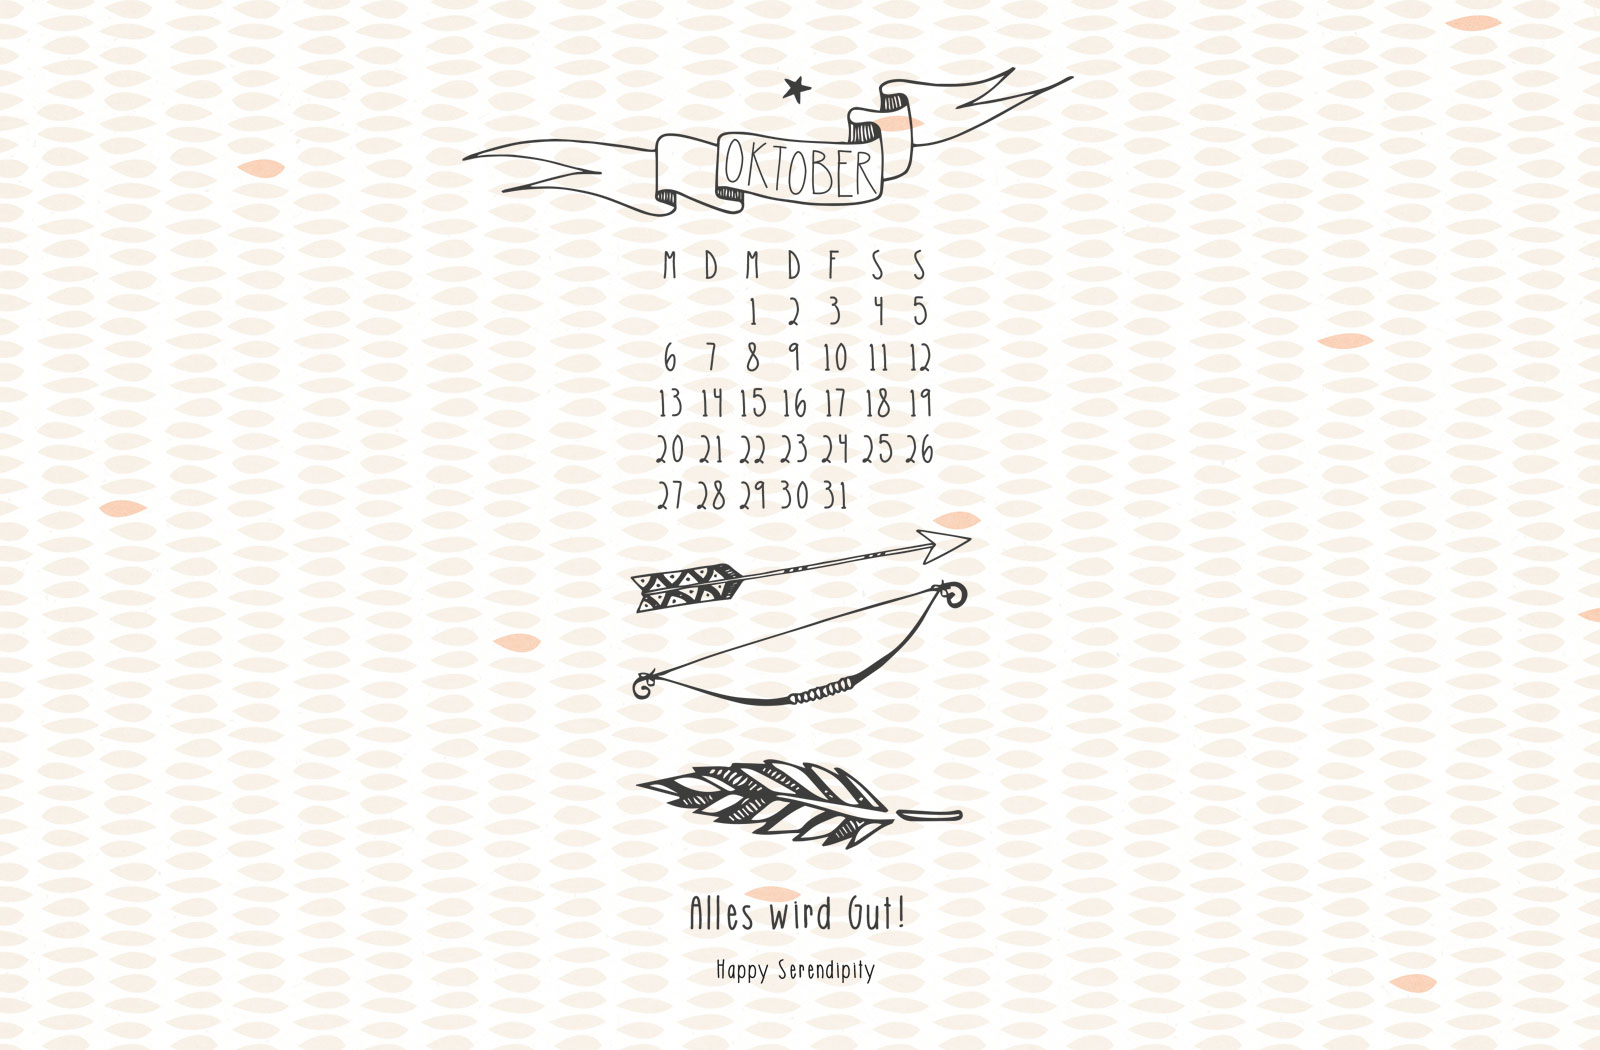 oktober-desktop-wallpaper-desktop-kalender-happyserendipity-1600x1050